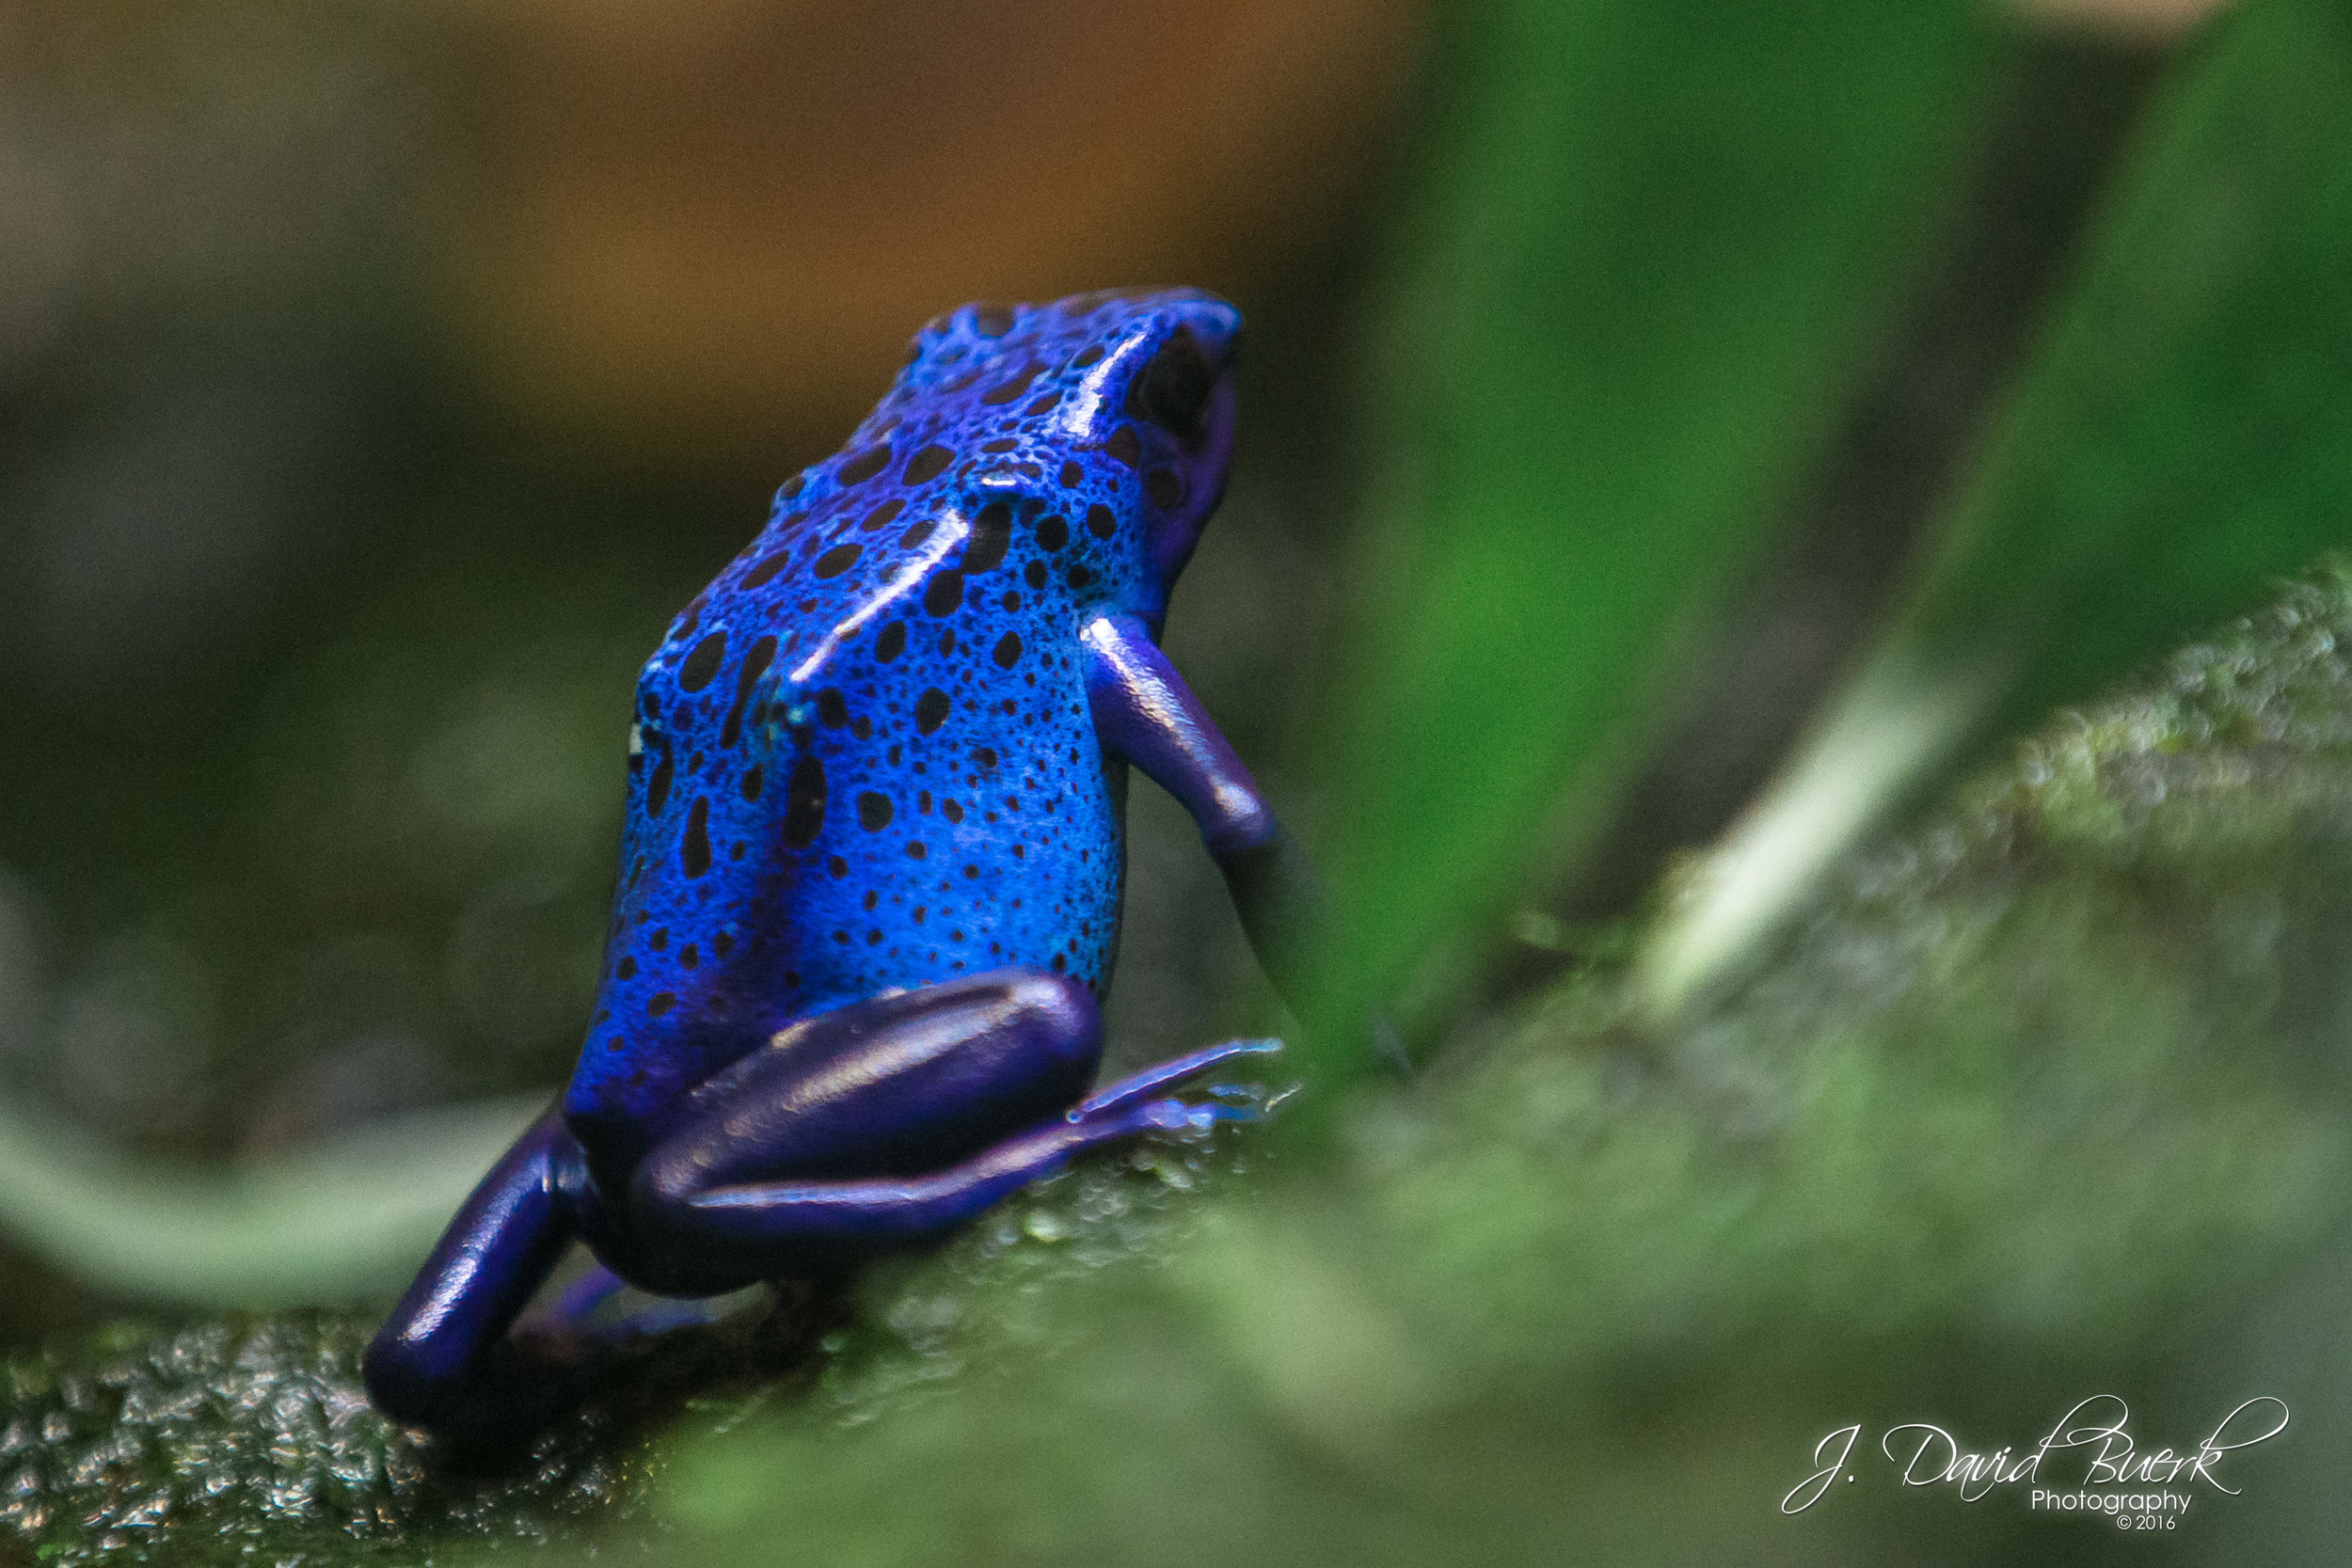 A blue poison dart frog photographed at the Smithsonian National Zoological Park in Washington, DC.